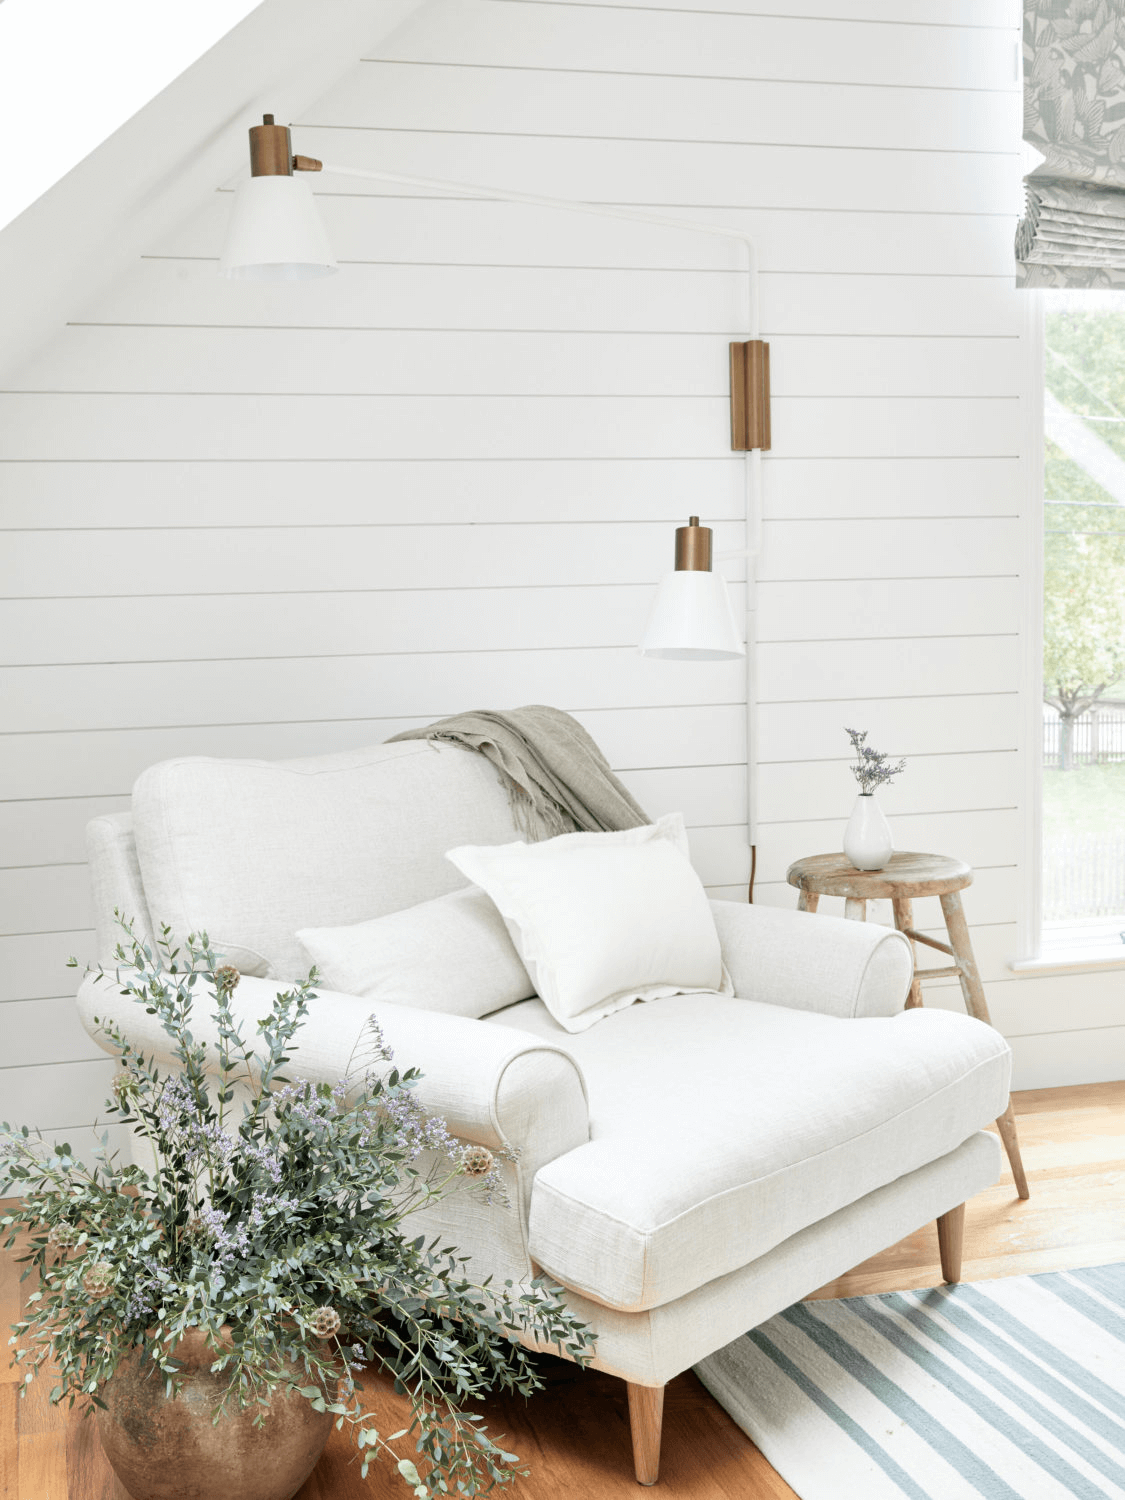 this is a farmhouse bedroom with cozy aesthetics, perfect for farmhouse interiors(1)